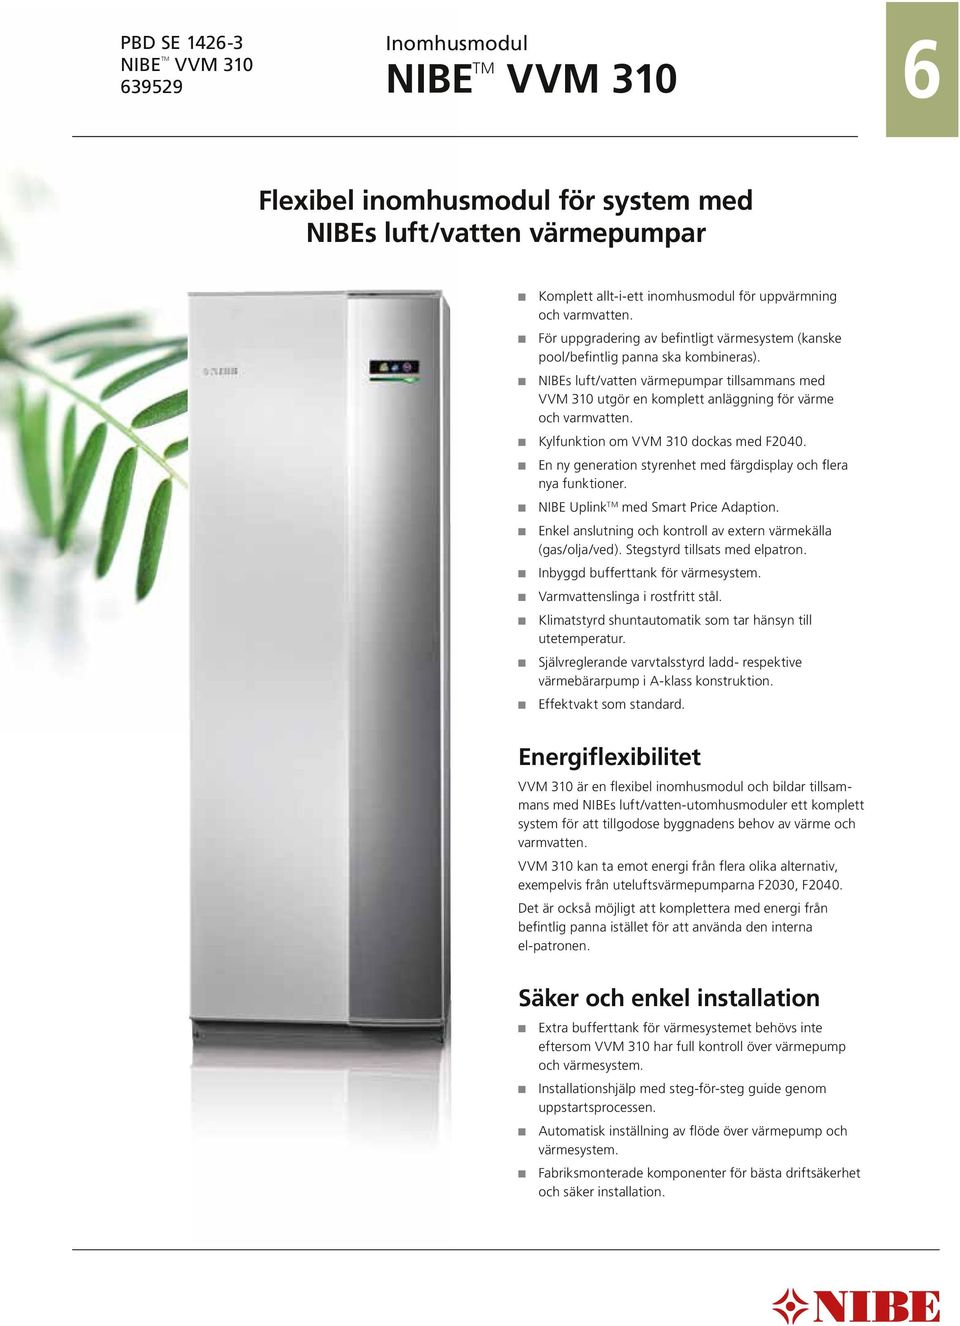 Kylfunktion om VVM 310 dockas med F2040. En ny generation styrenhet med färgdisplay och flera nya funktioner. NIBE Uplink TM med Smart Price Adaption.